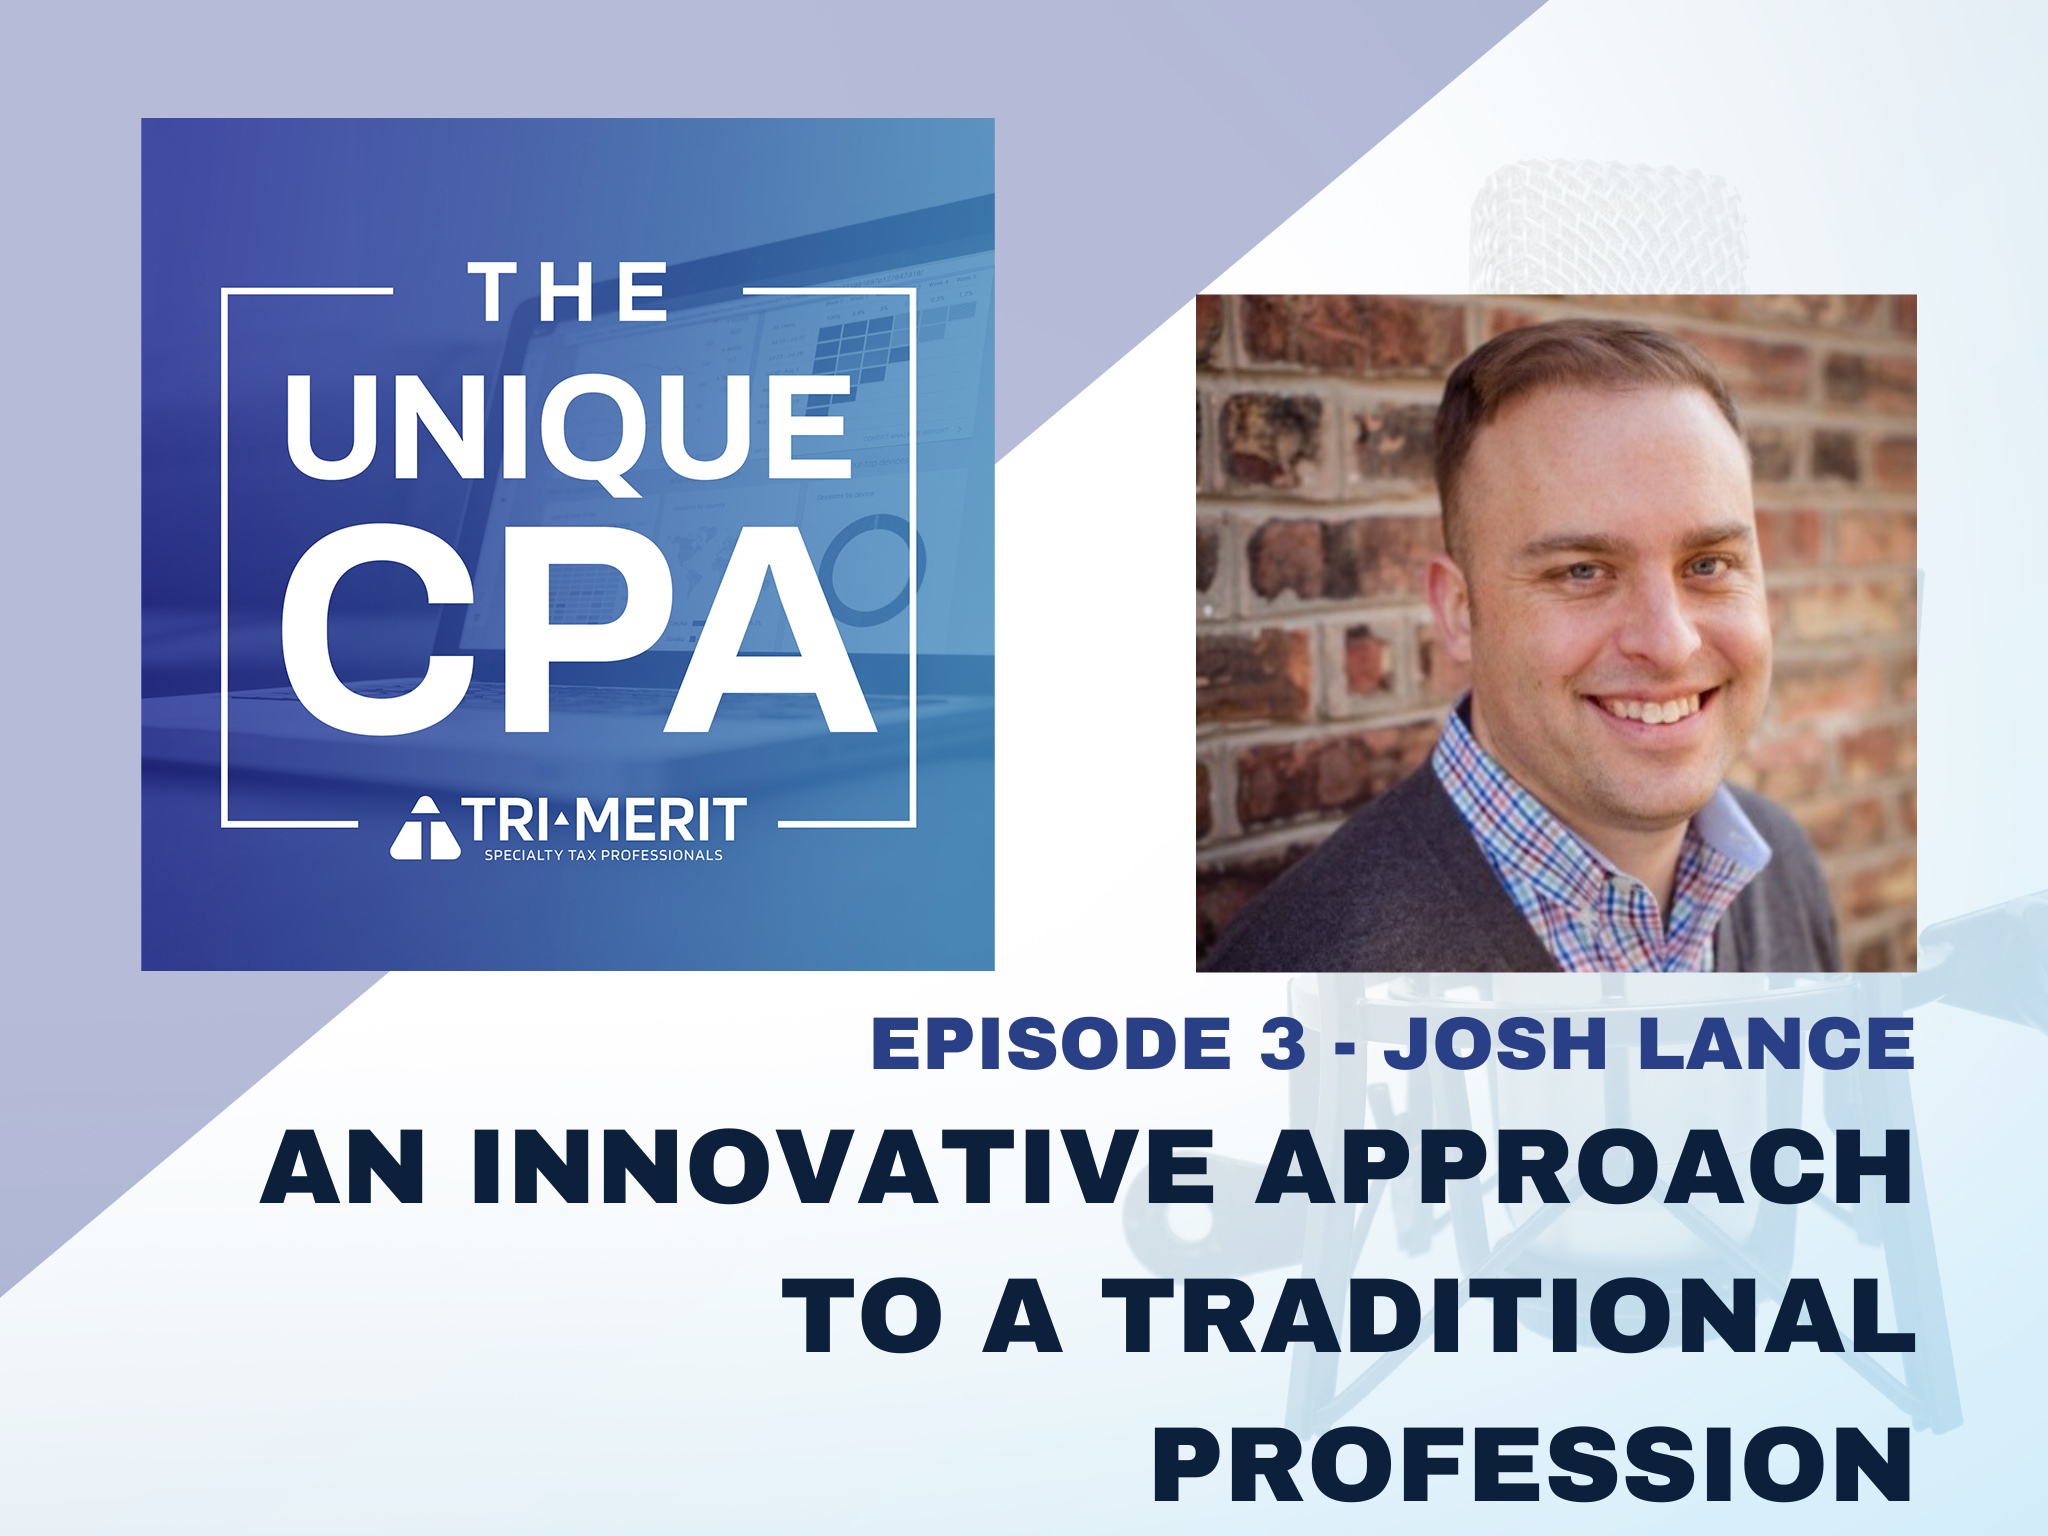 The Unique CPA Feature Image Ep 3 - An Innovative Approach to a Traditional Profession - Tri-Merit